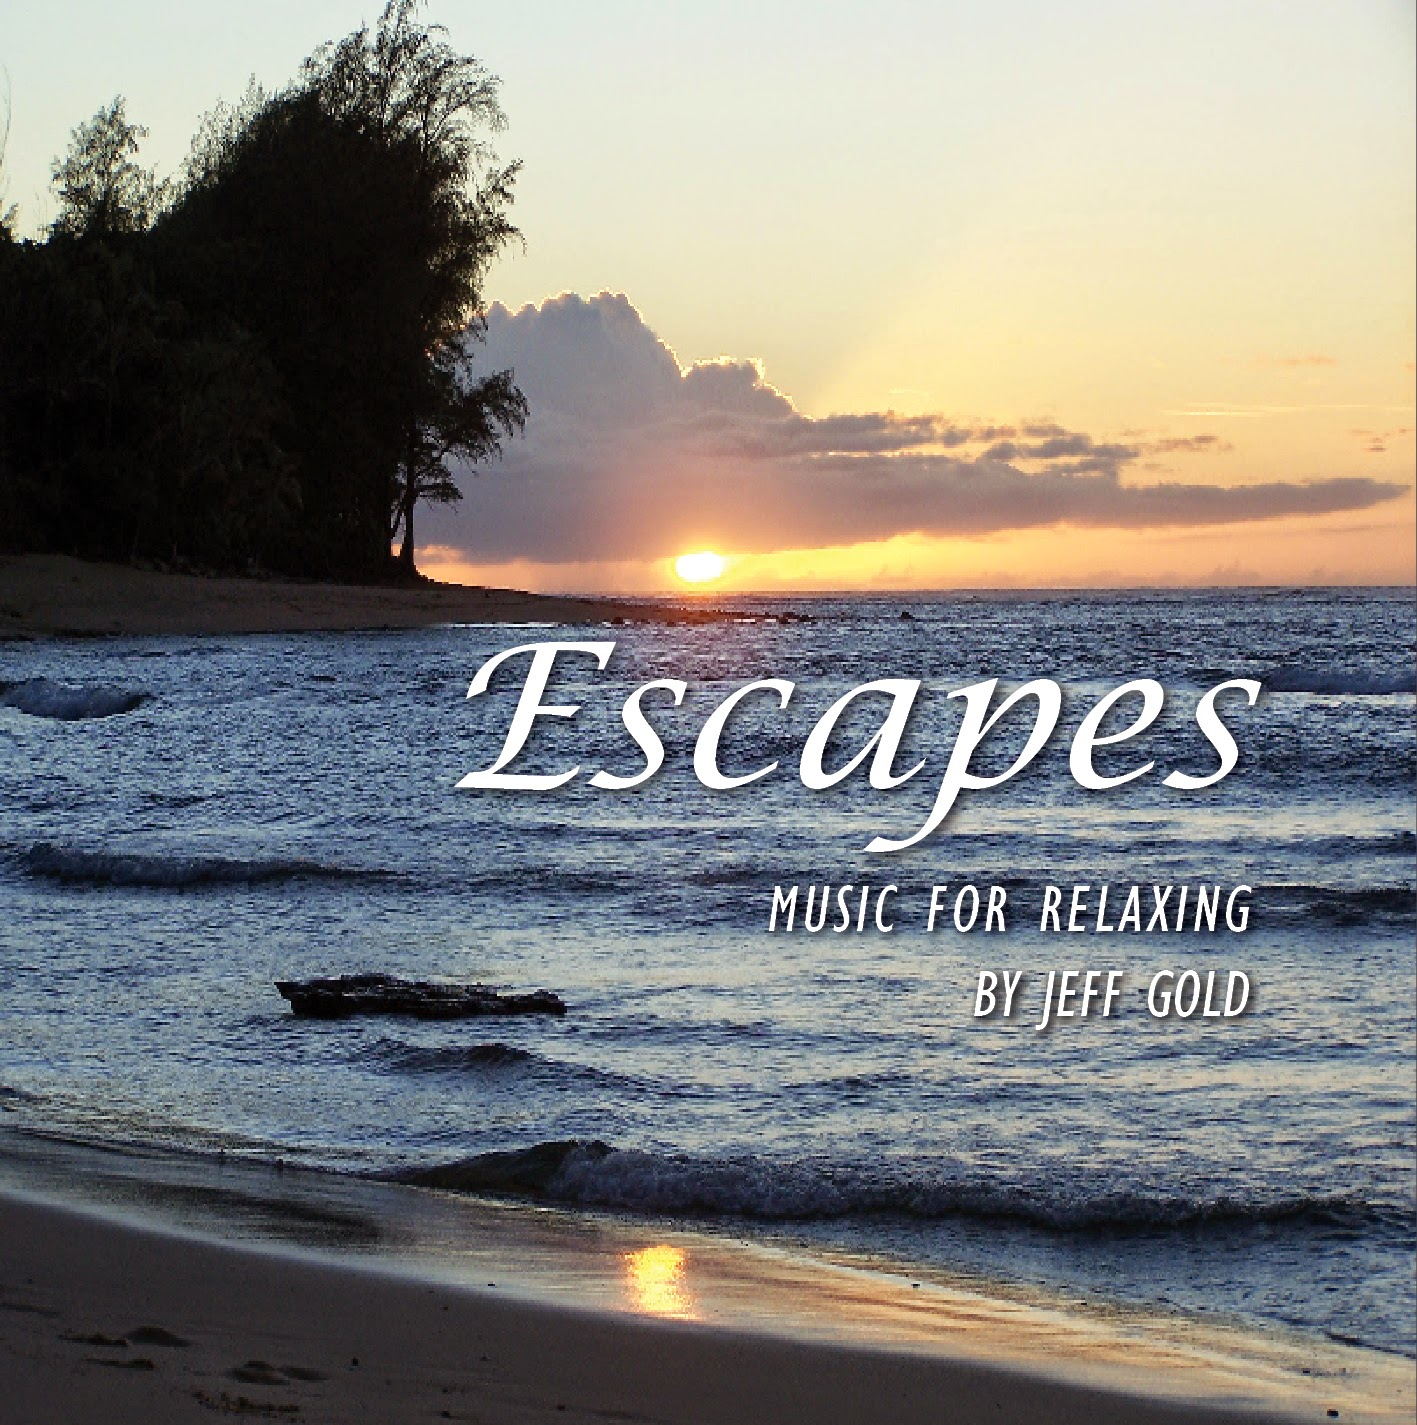 http://www.amazon.com/Escapes-Music-Relaxing-Jeff-Gold/dp/B002A6LF6K/ref=tmm_msc_swatch_0?_encoding=UTF8&sr=8-1&qid=1419215875